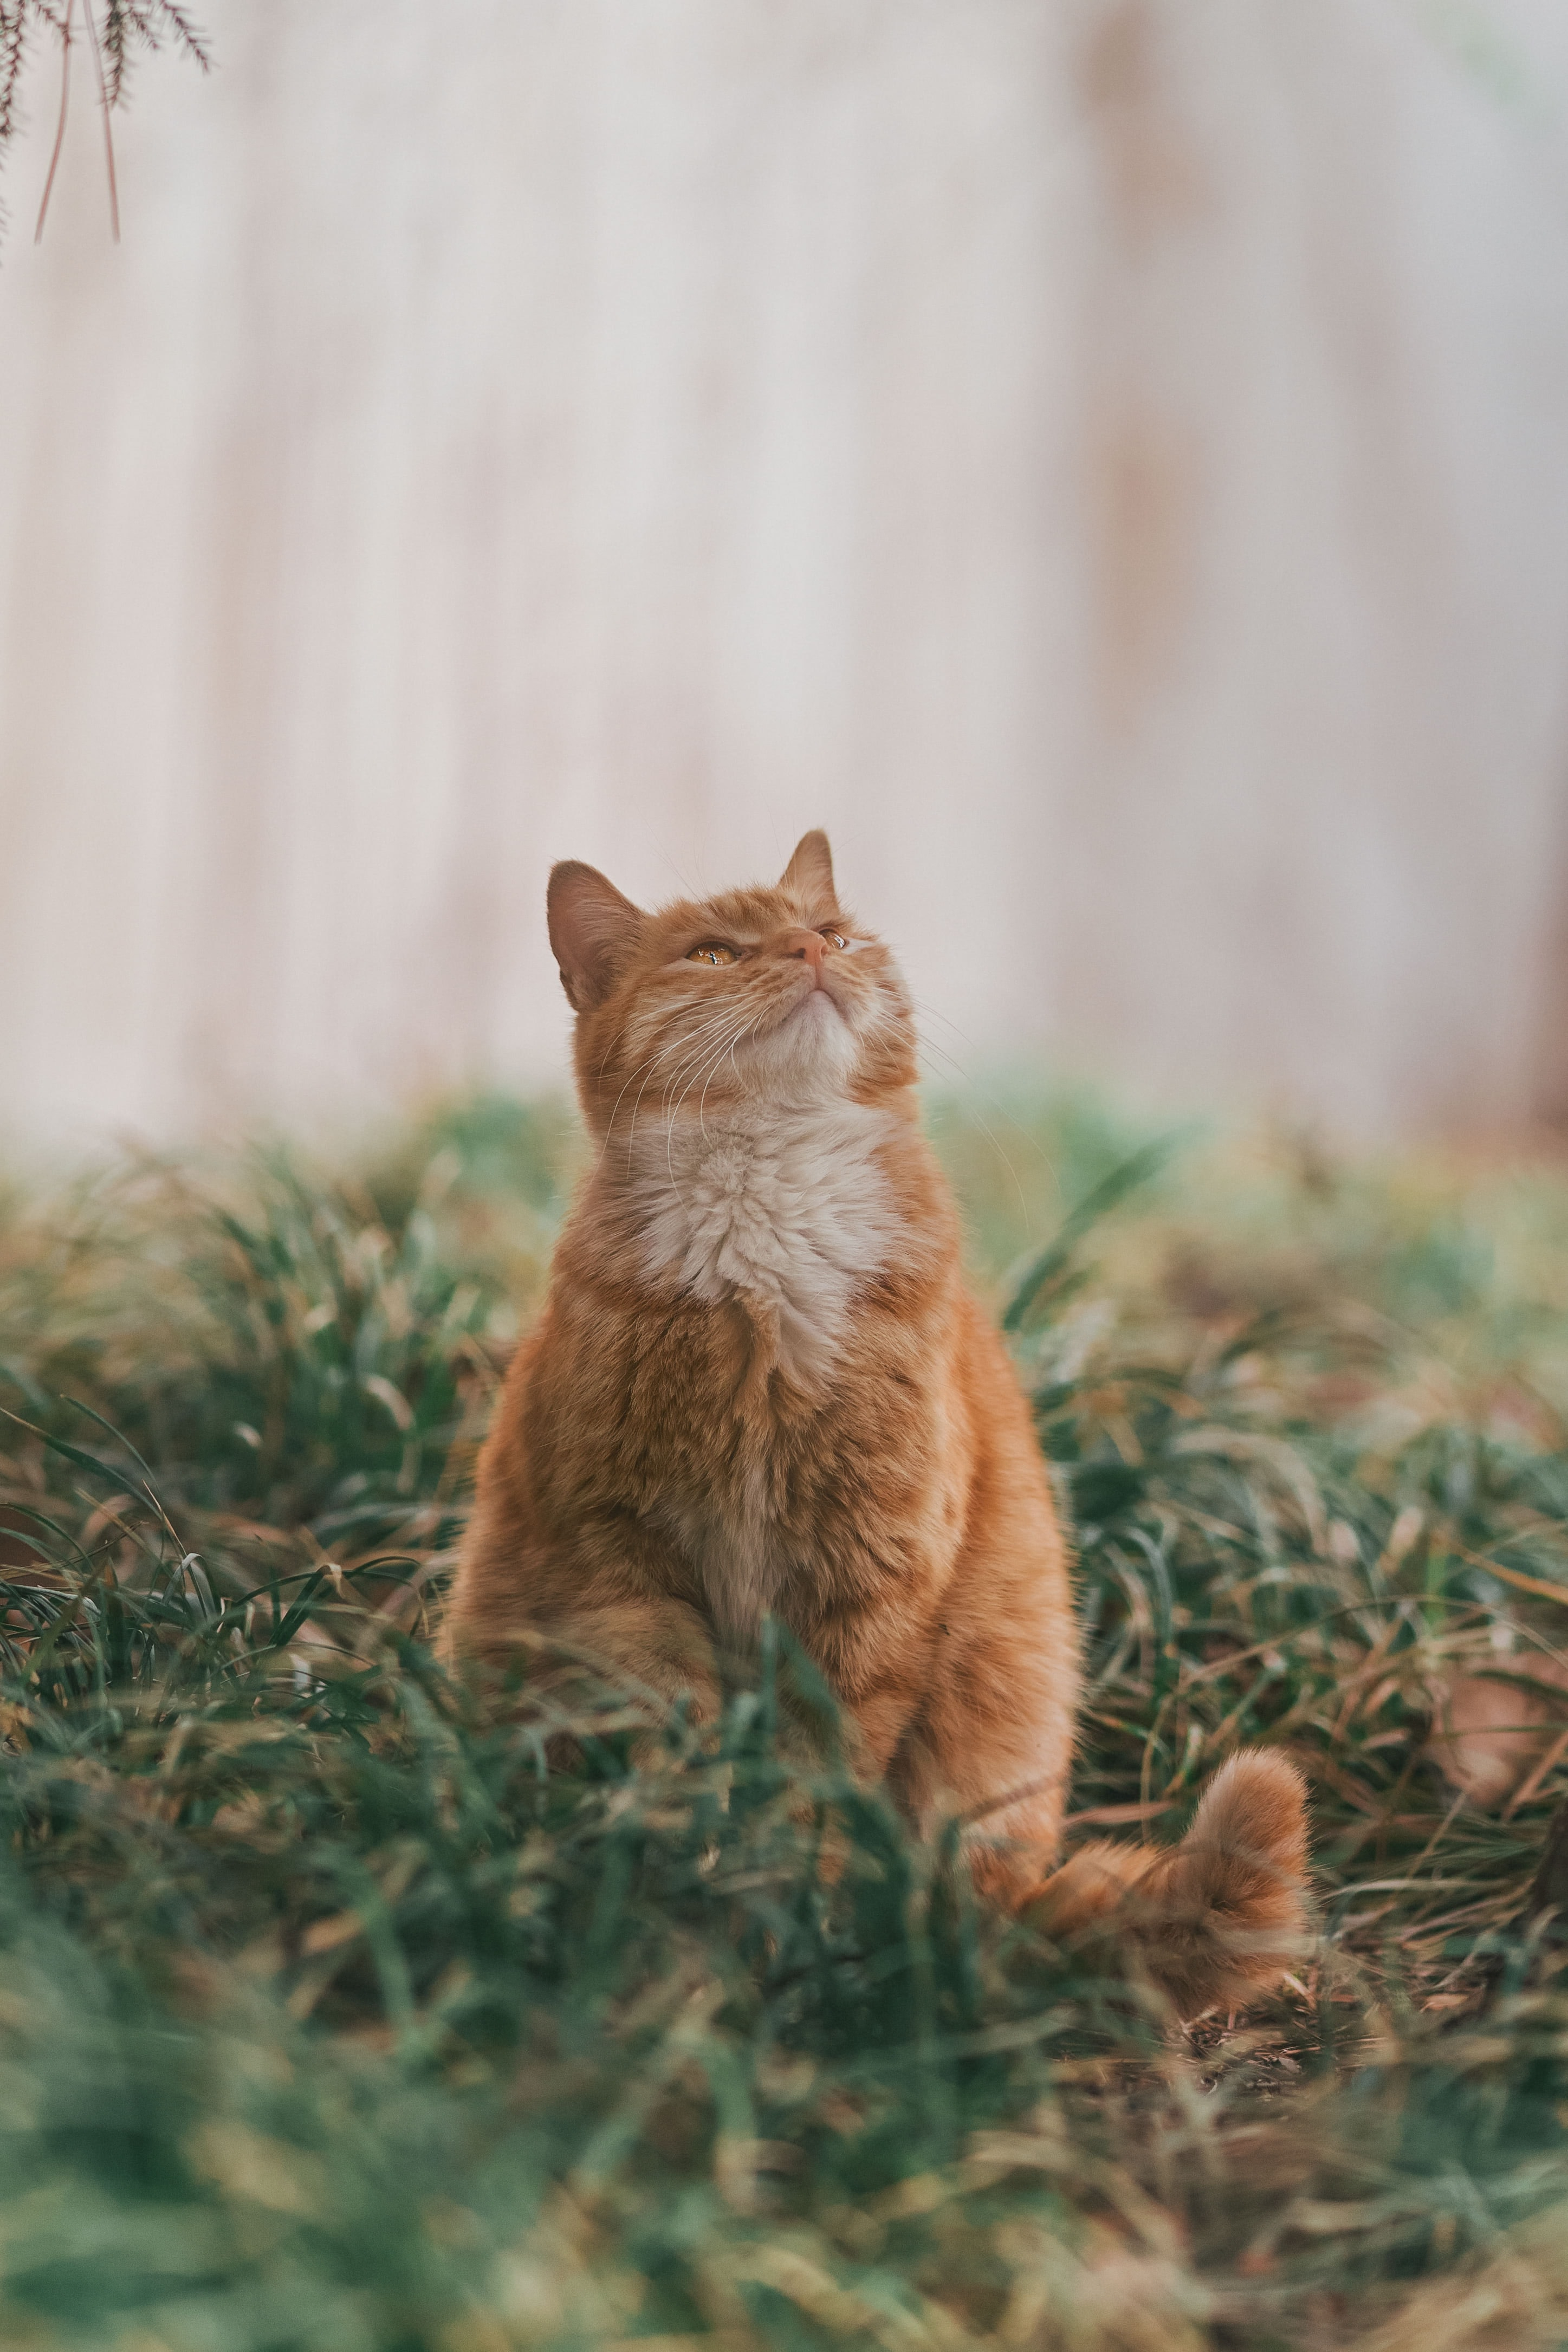 68334 download wallpaper Animals, Cat, Pet, Sight, Opinion, Fluffy, Nice, Sweetheart, Grass screensavers and pictures for free